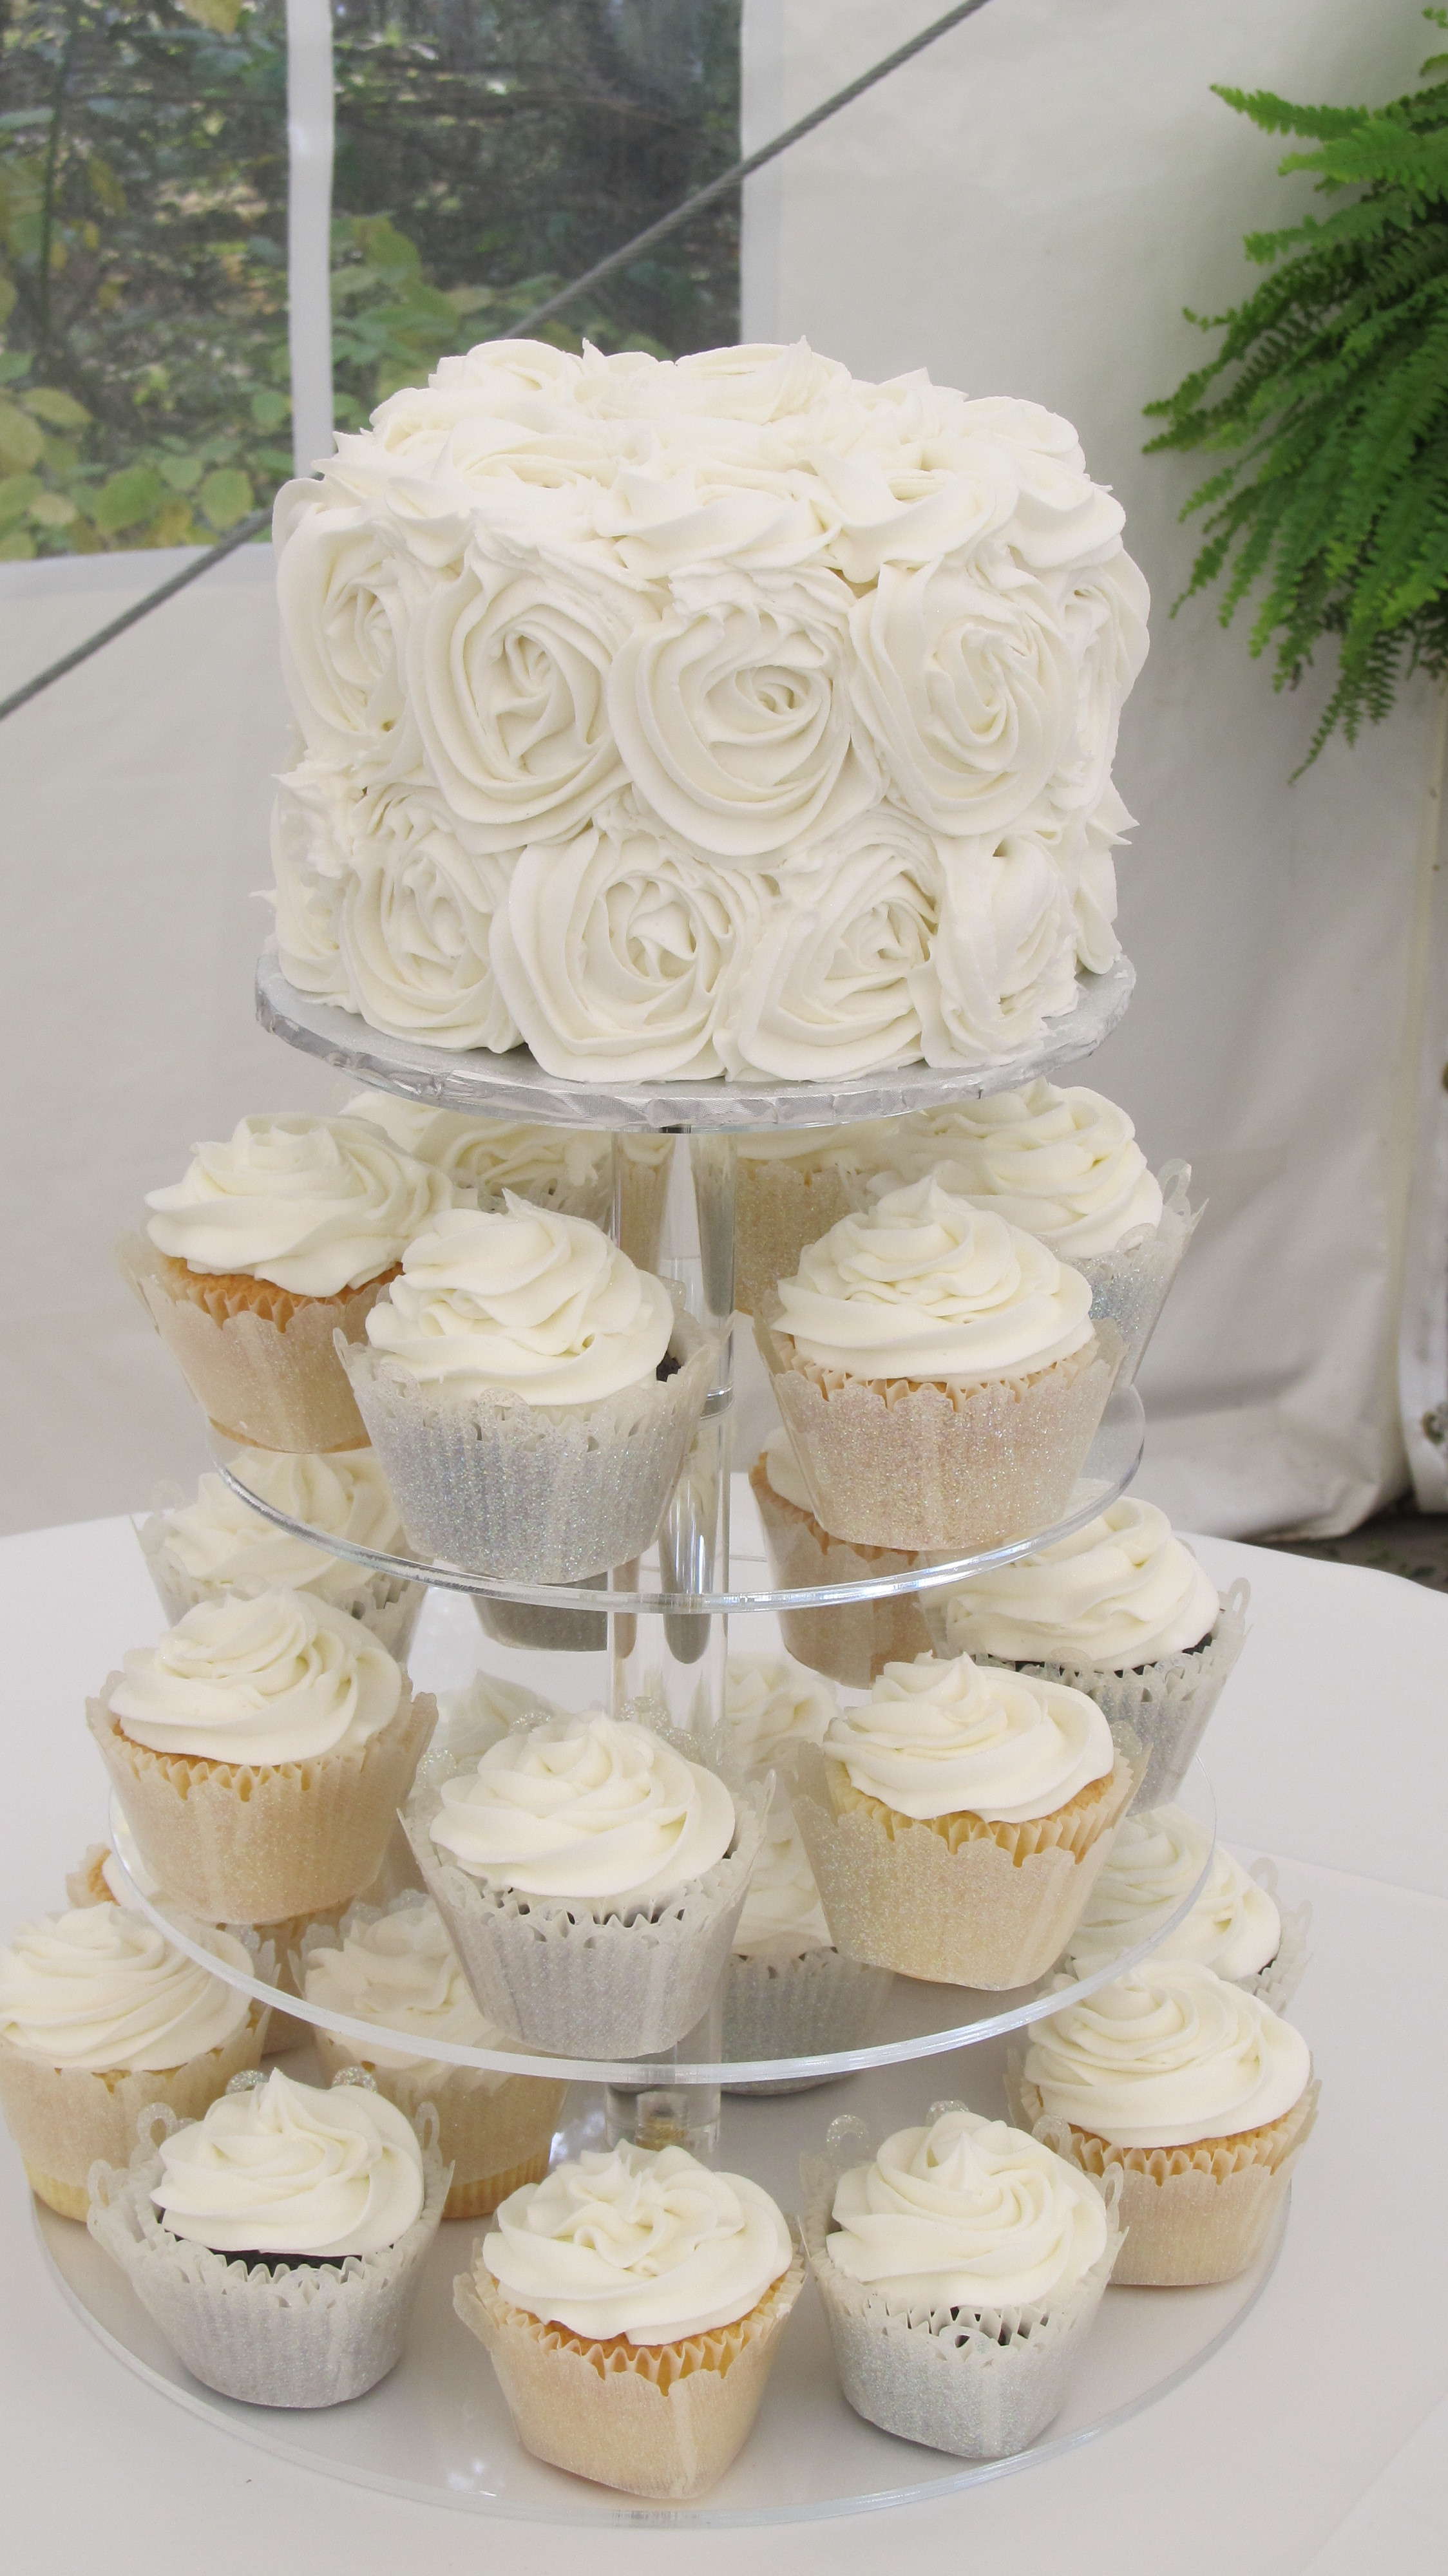 White Wedding Cake Cupcakes  White Wedding Cake Cupcakes